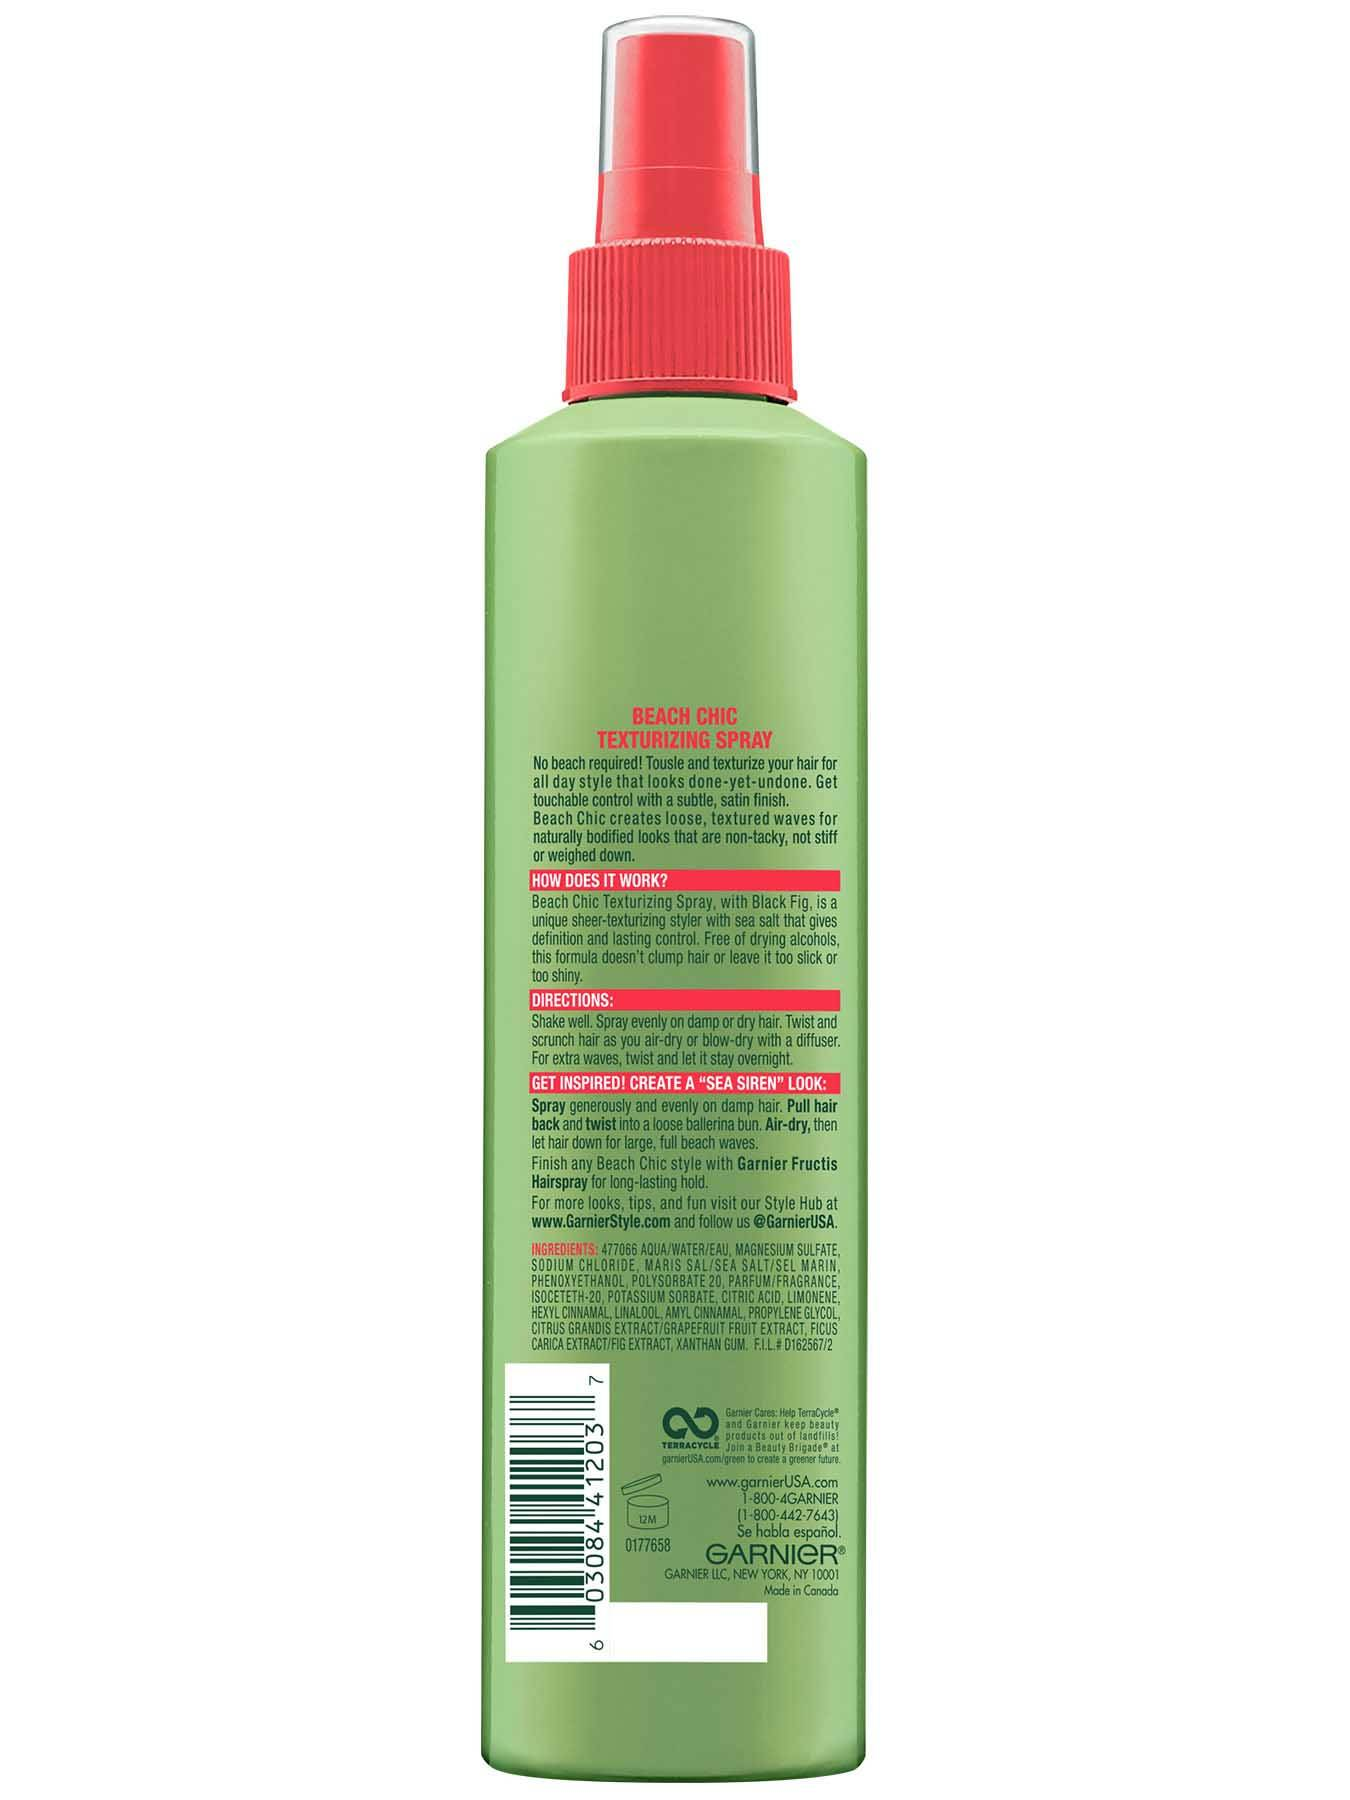 Garnier Fructis Style Beach Chic Texturizing Spray Back